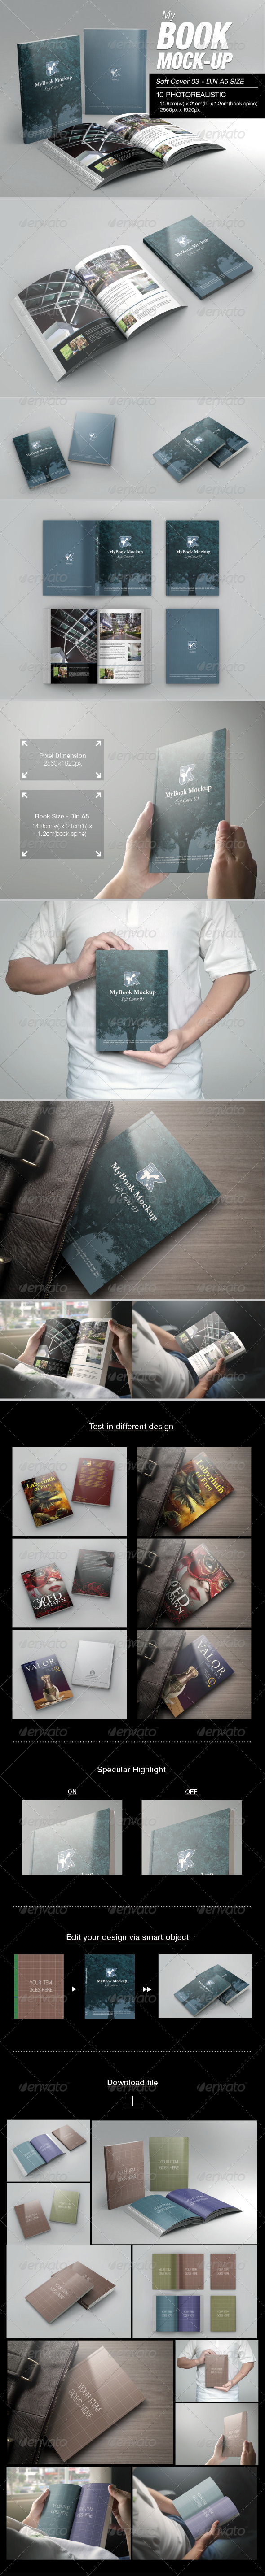 Soft Cover 03 Mock-up - Books Print